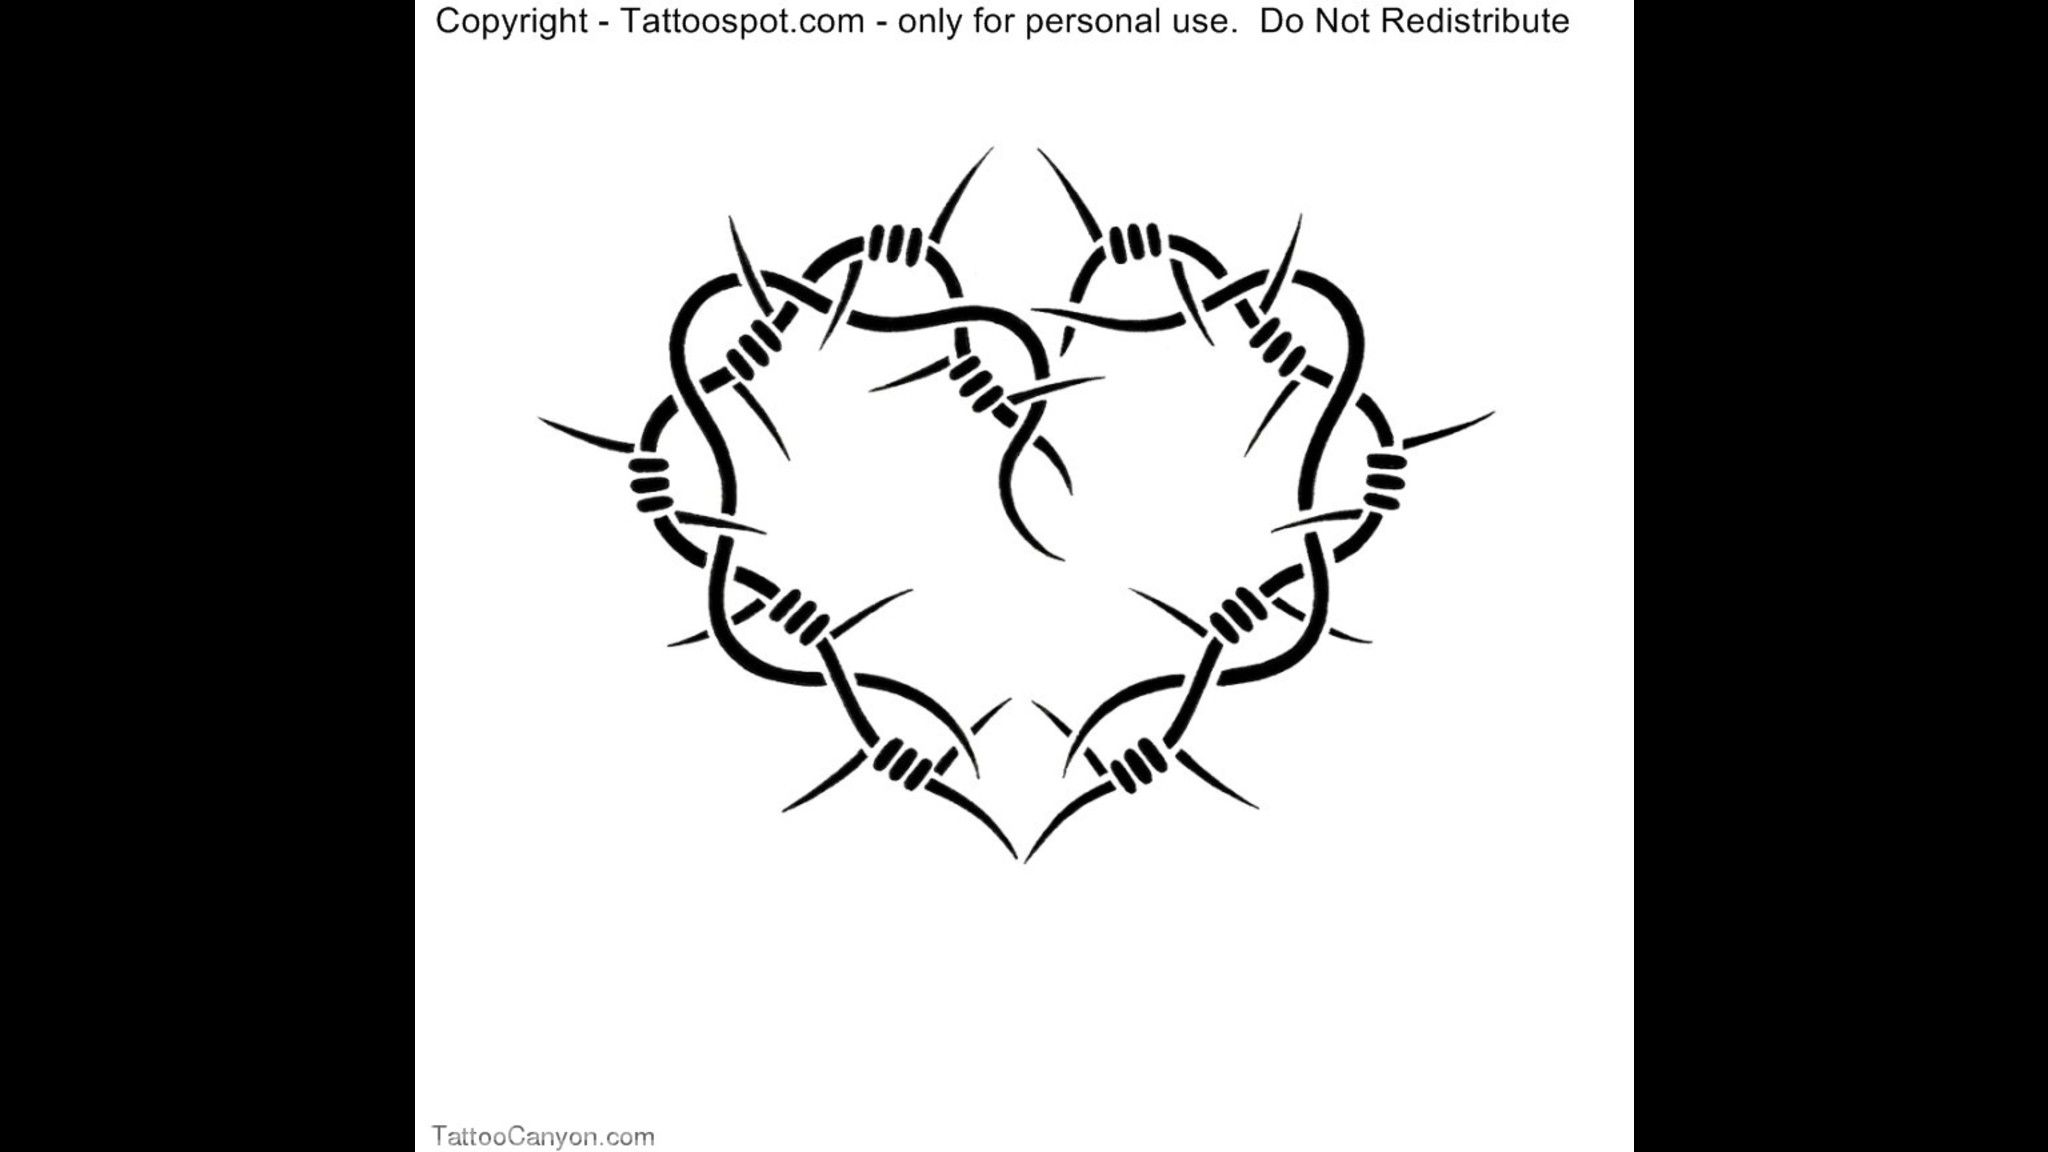 Barbed Wire Design Extra 1 Barb Tattoo Designs Free Tattoo